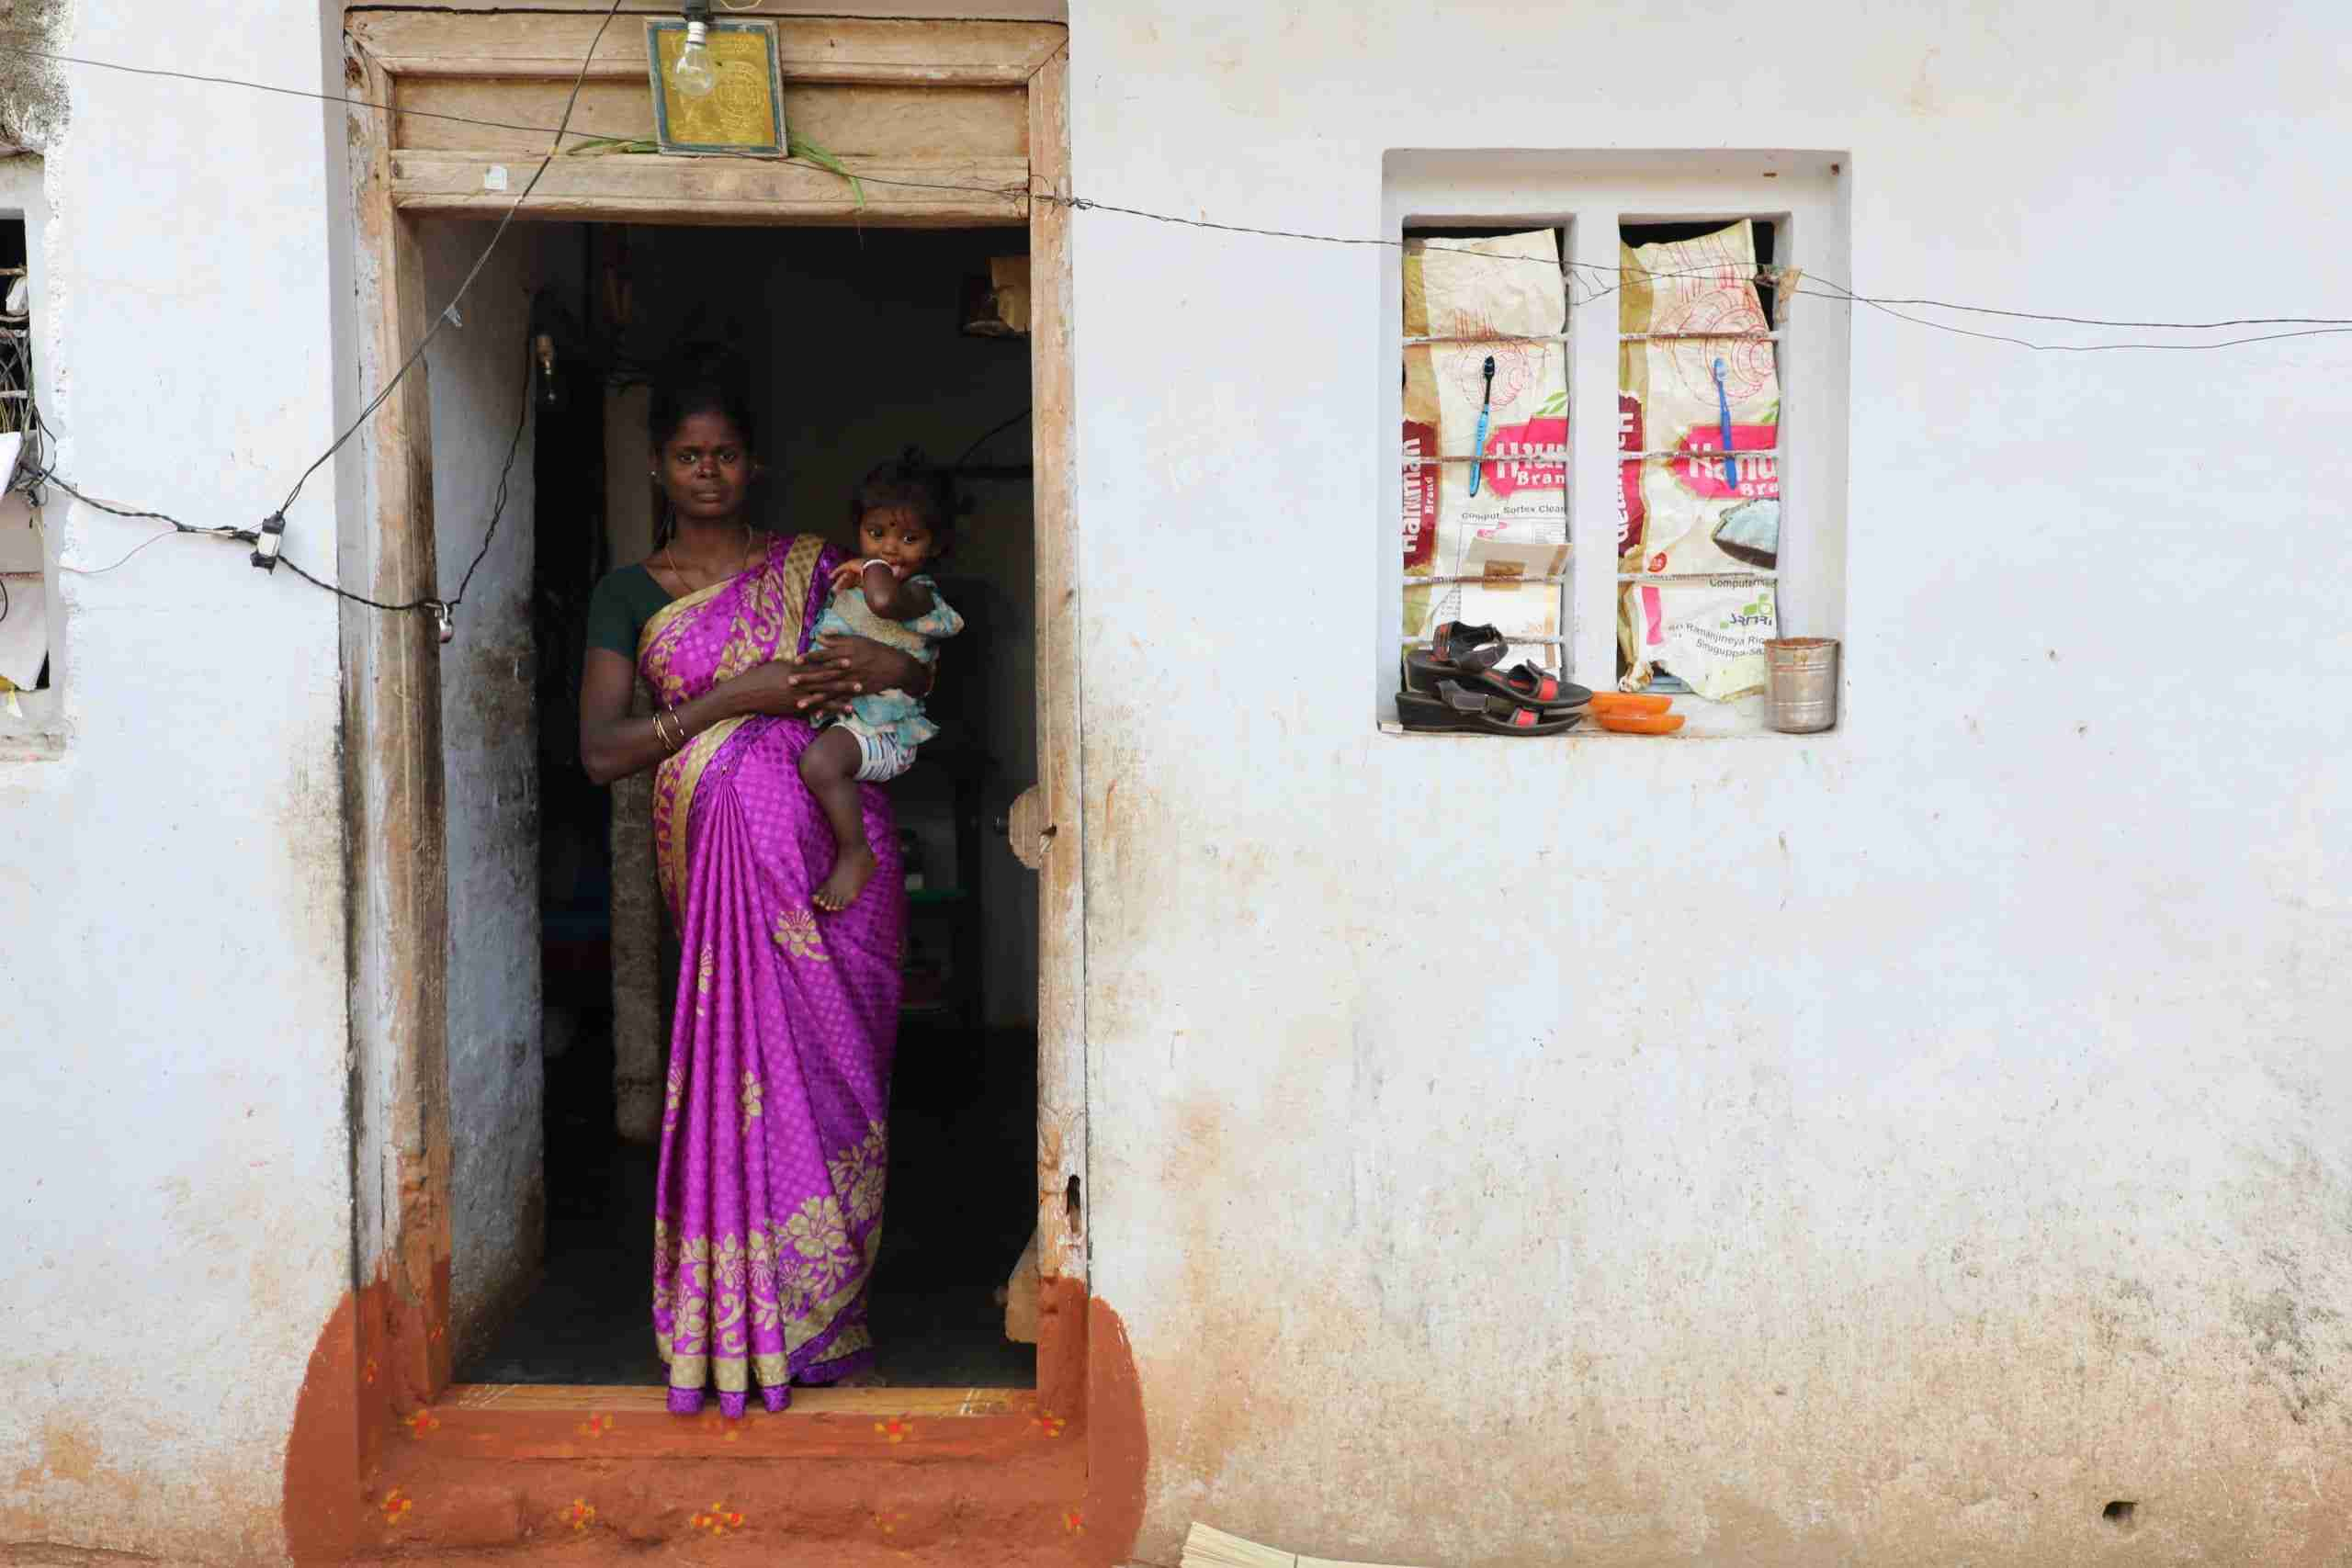 Woman holds a baby in doorway